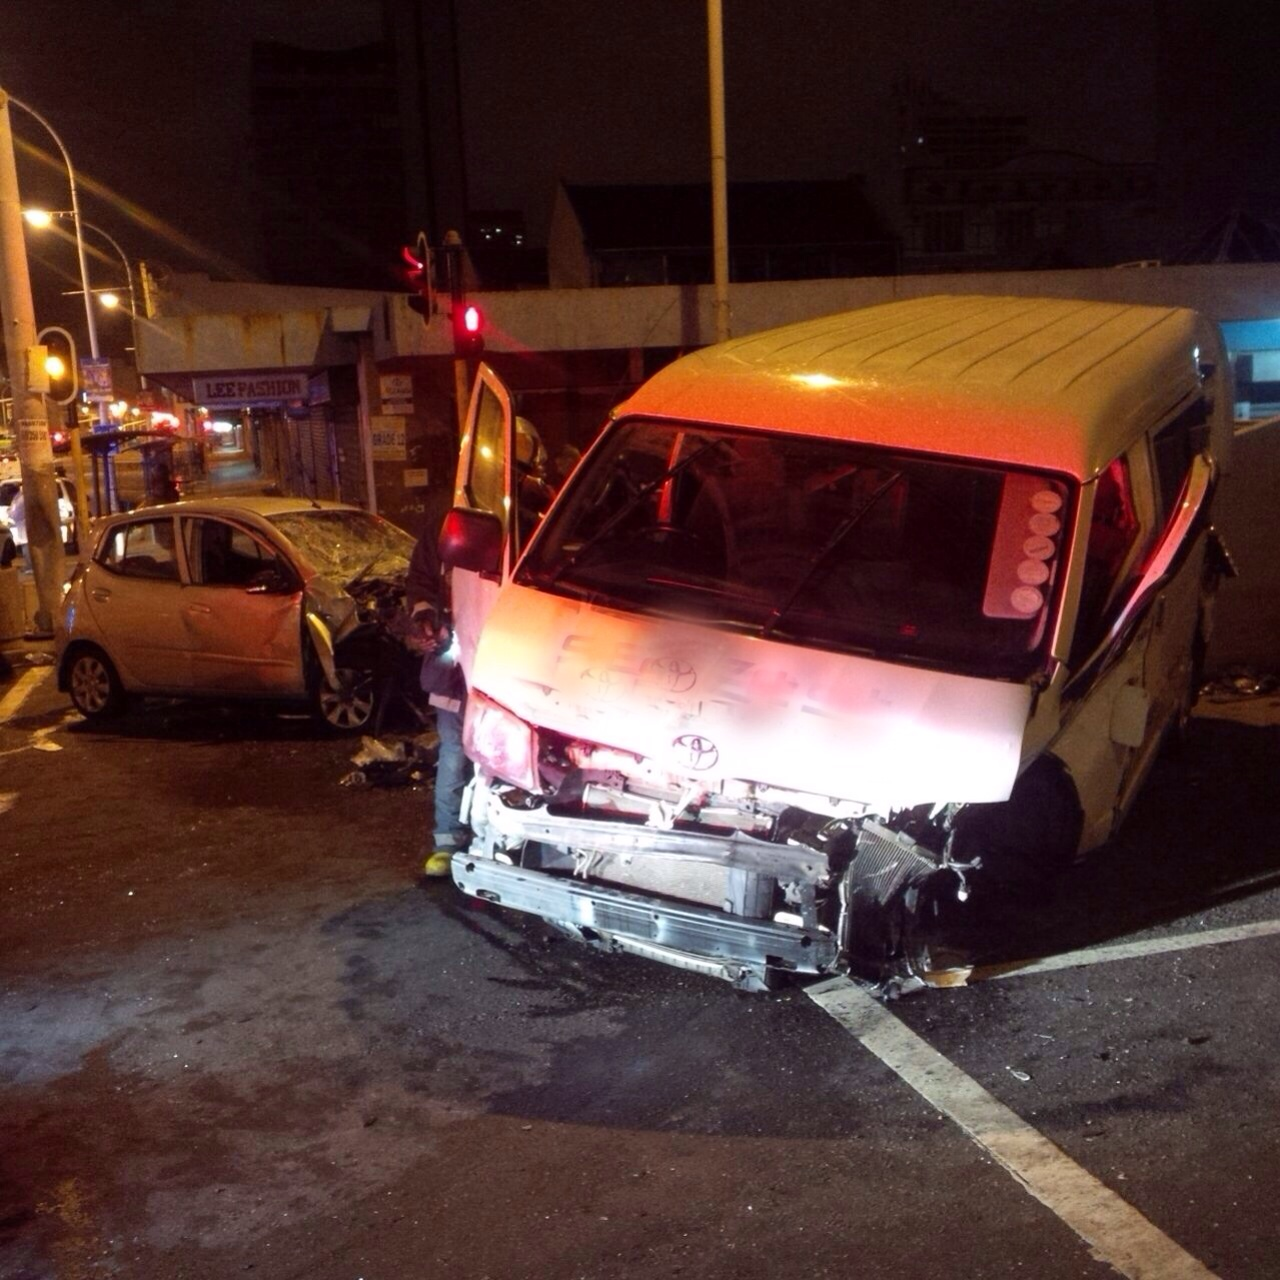 Early morning intersection collision in Durban leaves 2 injured, 1 critical